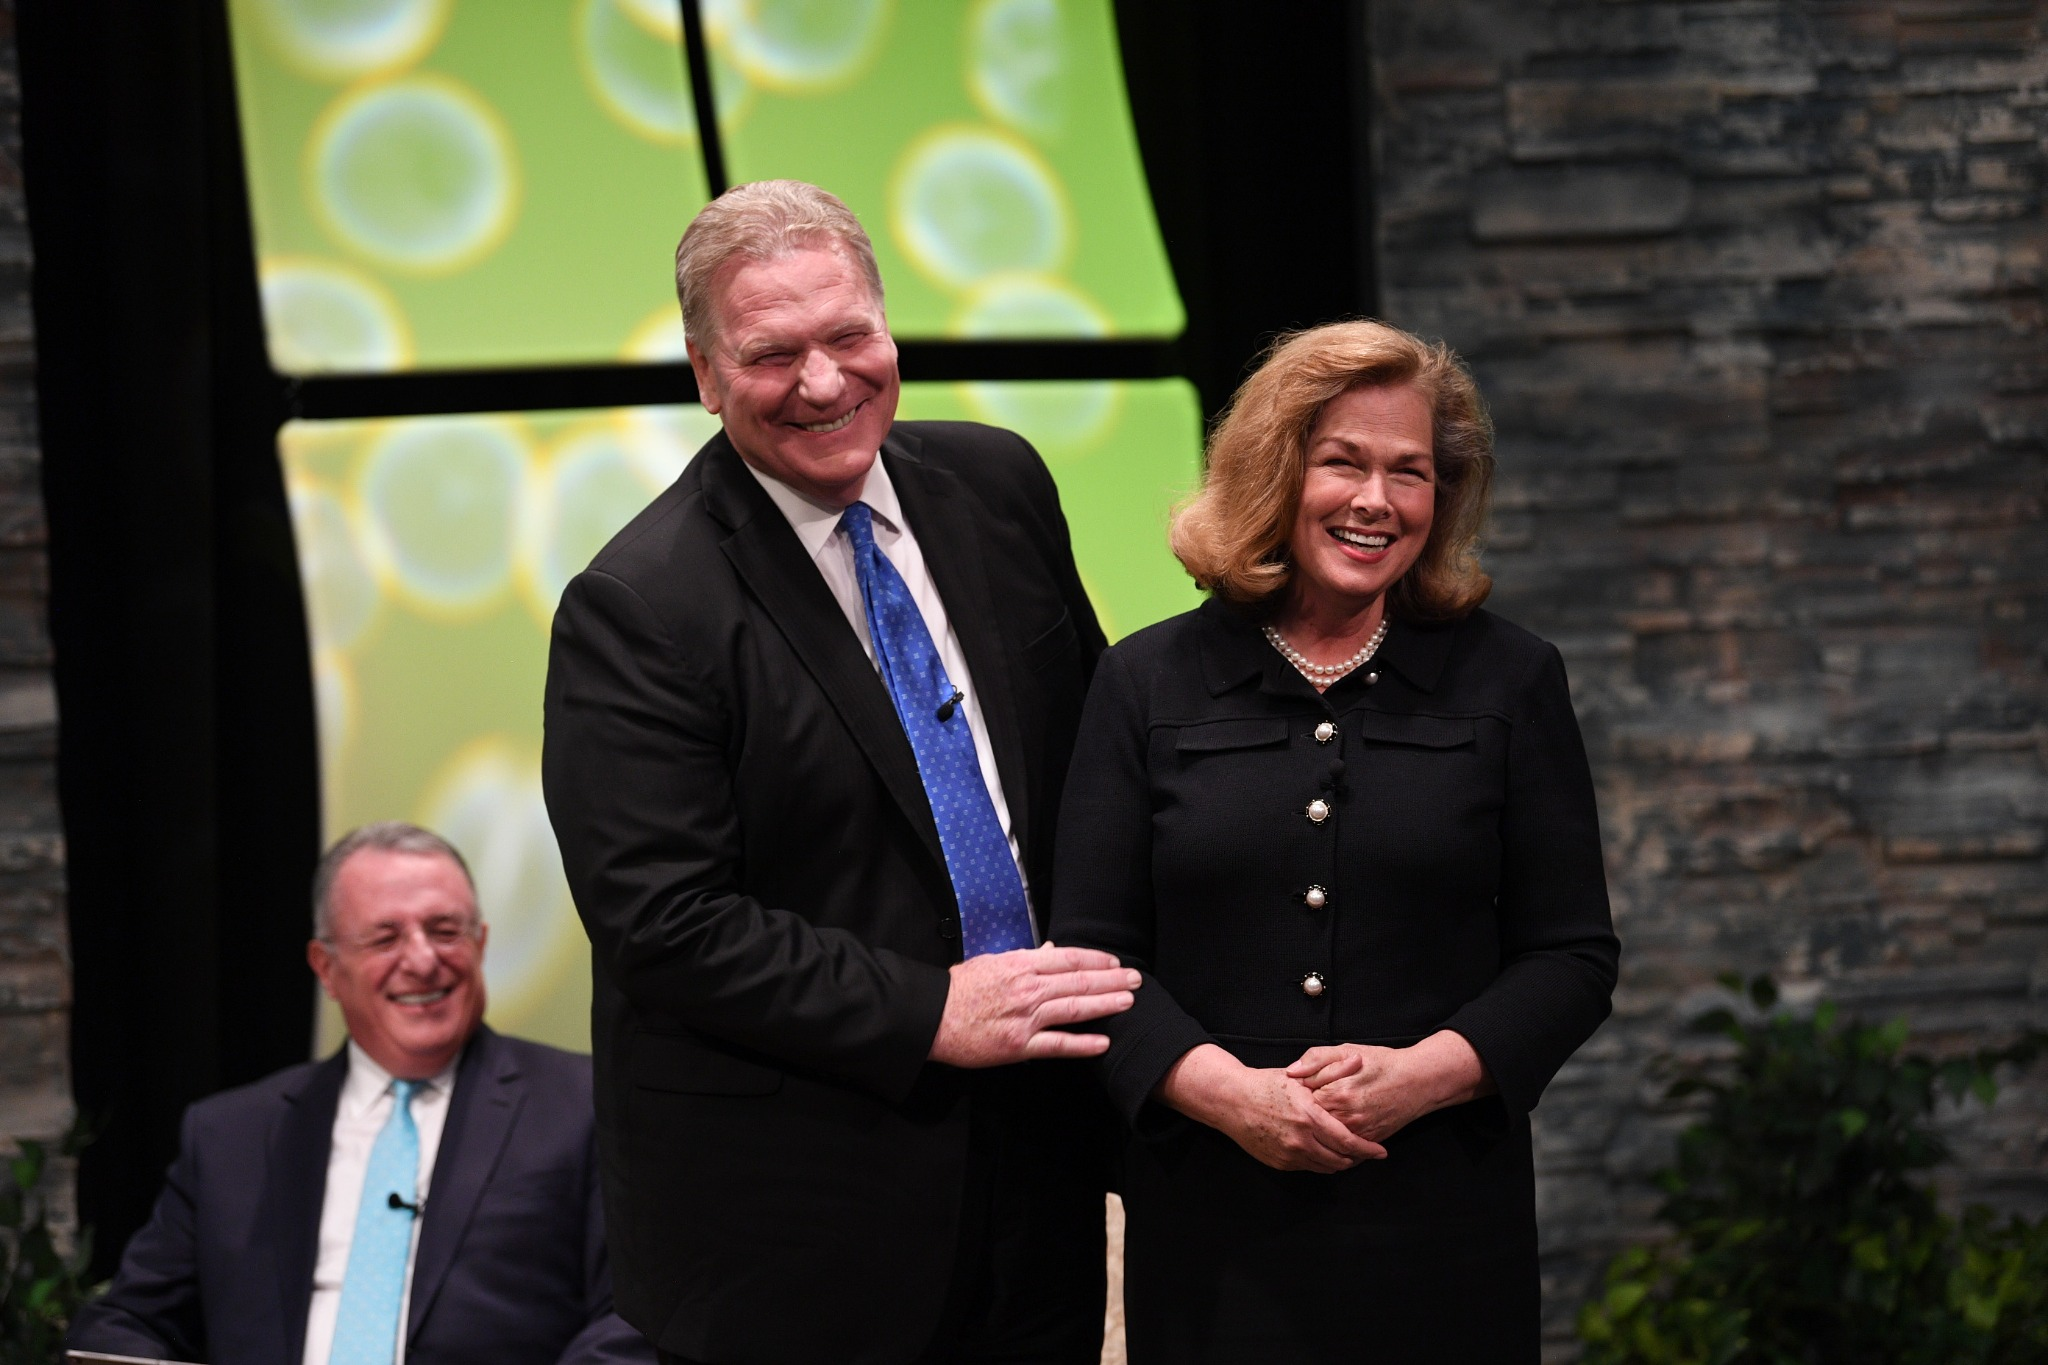 Elder Craig C. Christensen of the Seventy introduces his wife, Debbie, to the young adult audience at the Worldwide Devotional Face to Face broadcast on Sunday, September 15, 2019, in Provo, Utah.